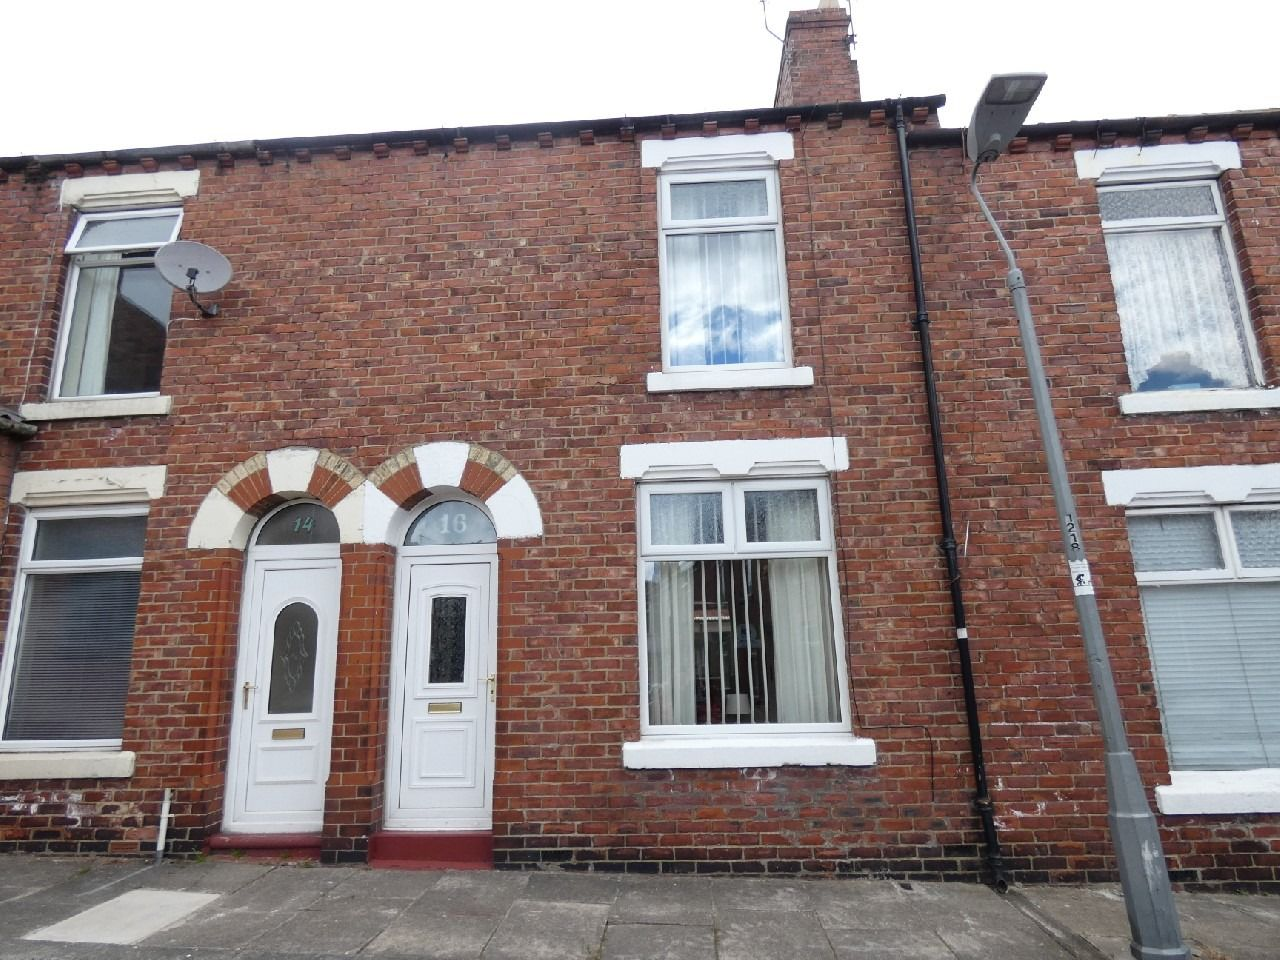 2 bedroom mid terraced house To Let in Durham - Photograph 1.